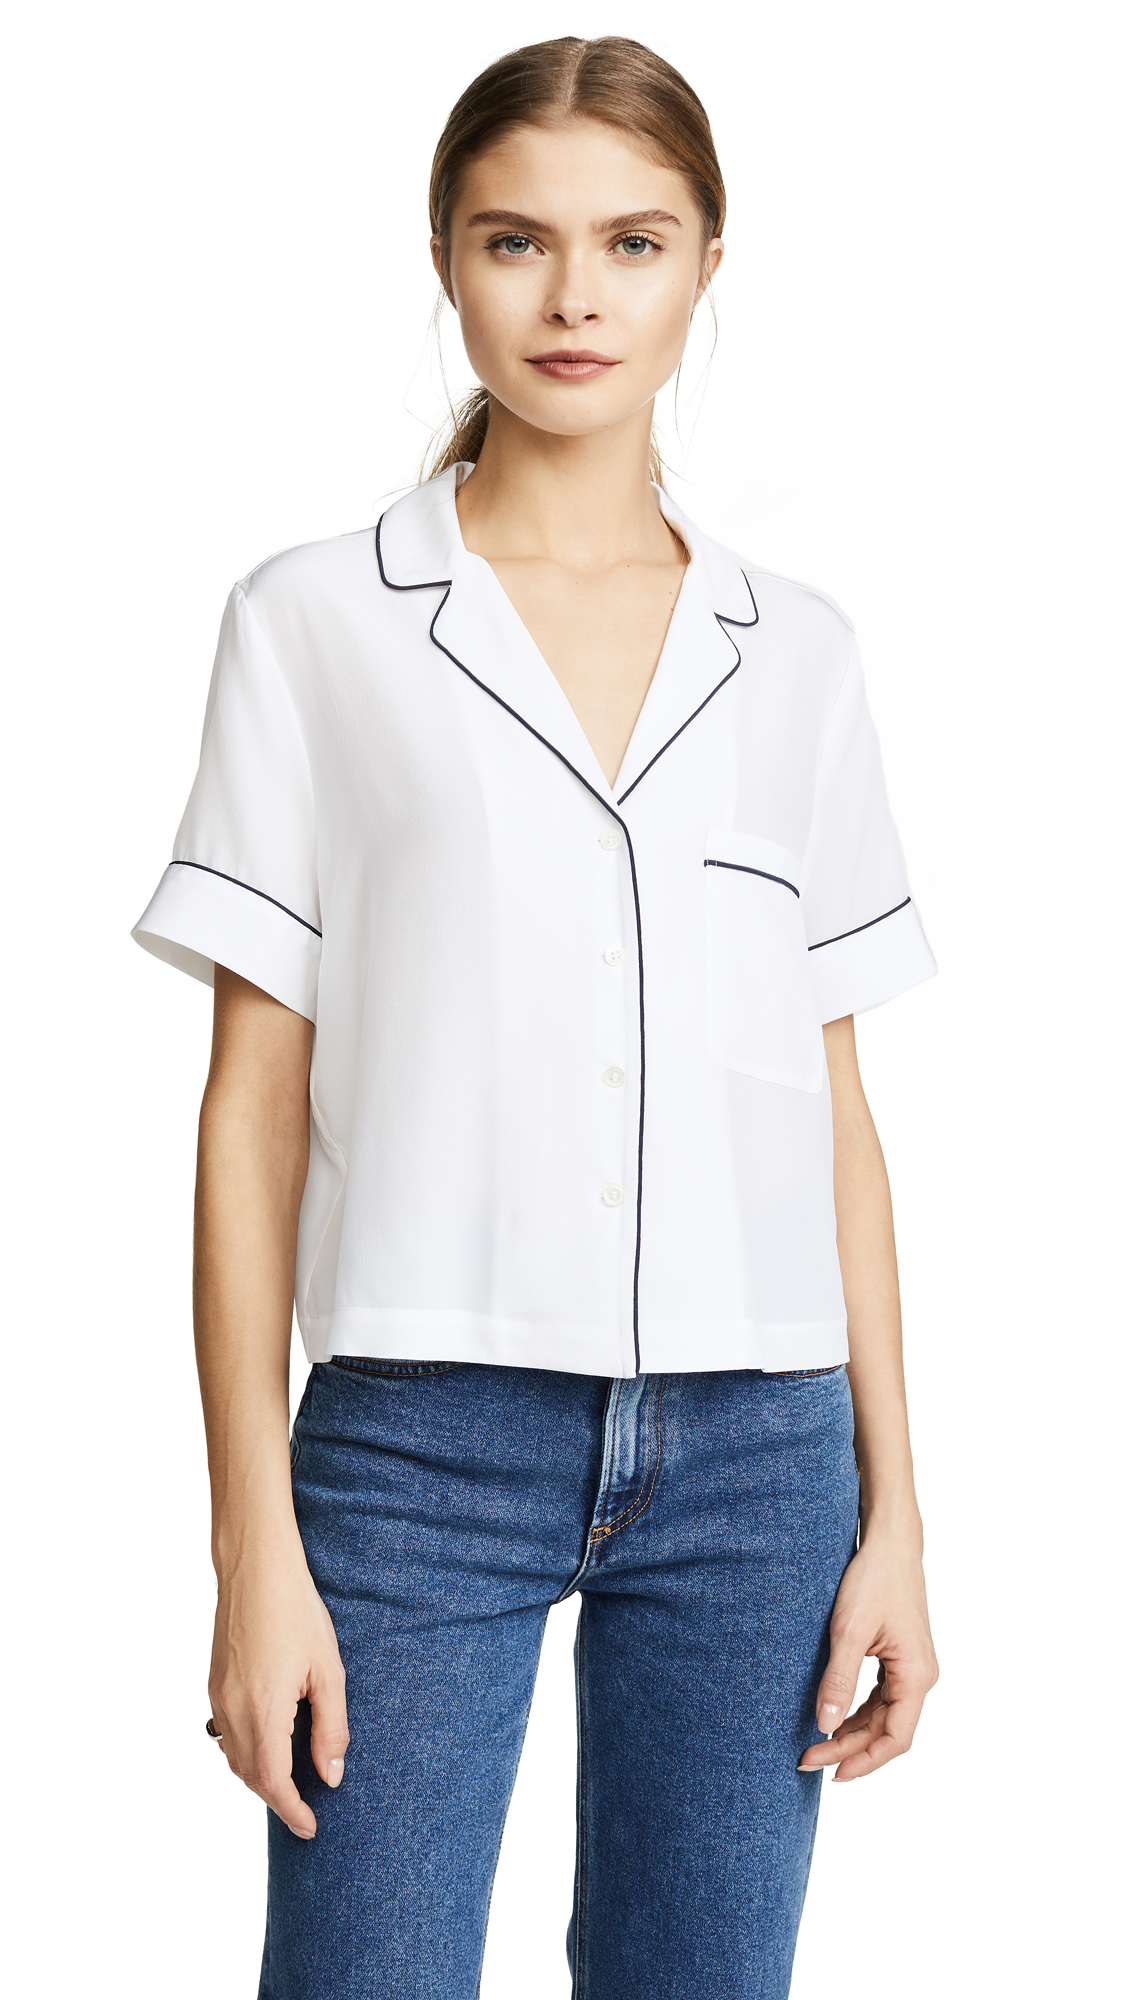 FRAME PJ Blouse - Blanc With Navy Piping